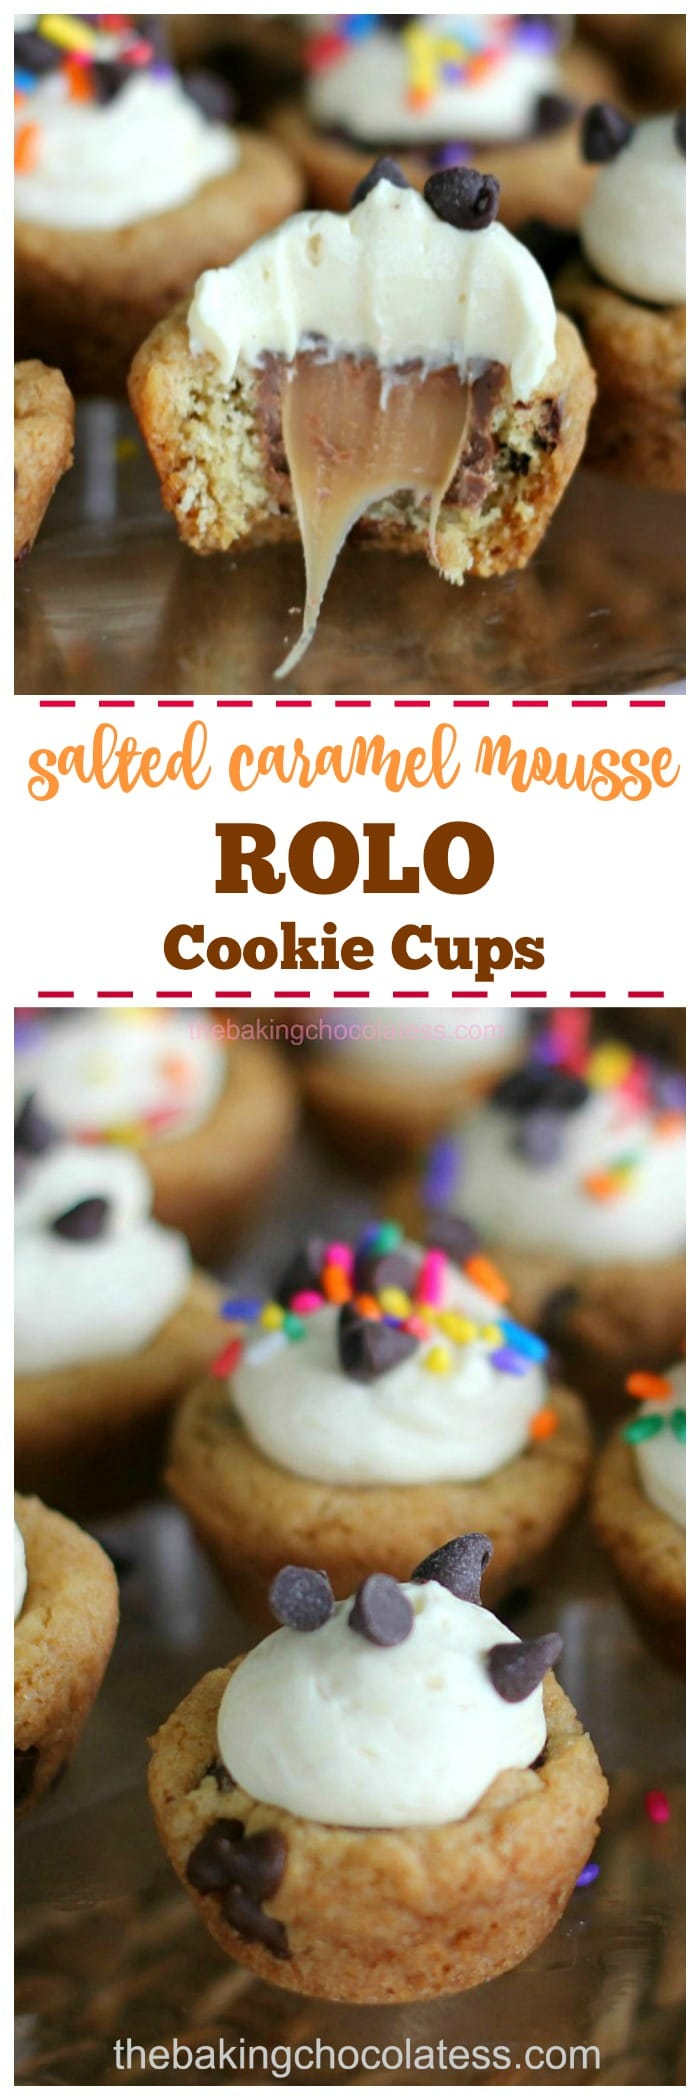 Salted Caramel Mousse ROLO Cookie Cups - Who could resist these little gooey cookie cups loaded with mini chocolate chips, ROLOs and a fluffy caramel mousse filling?  Not I